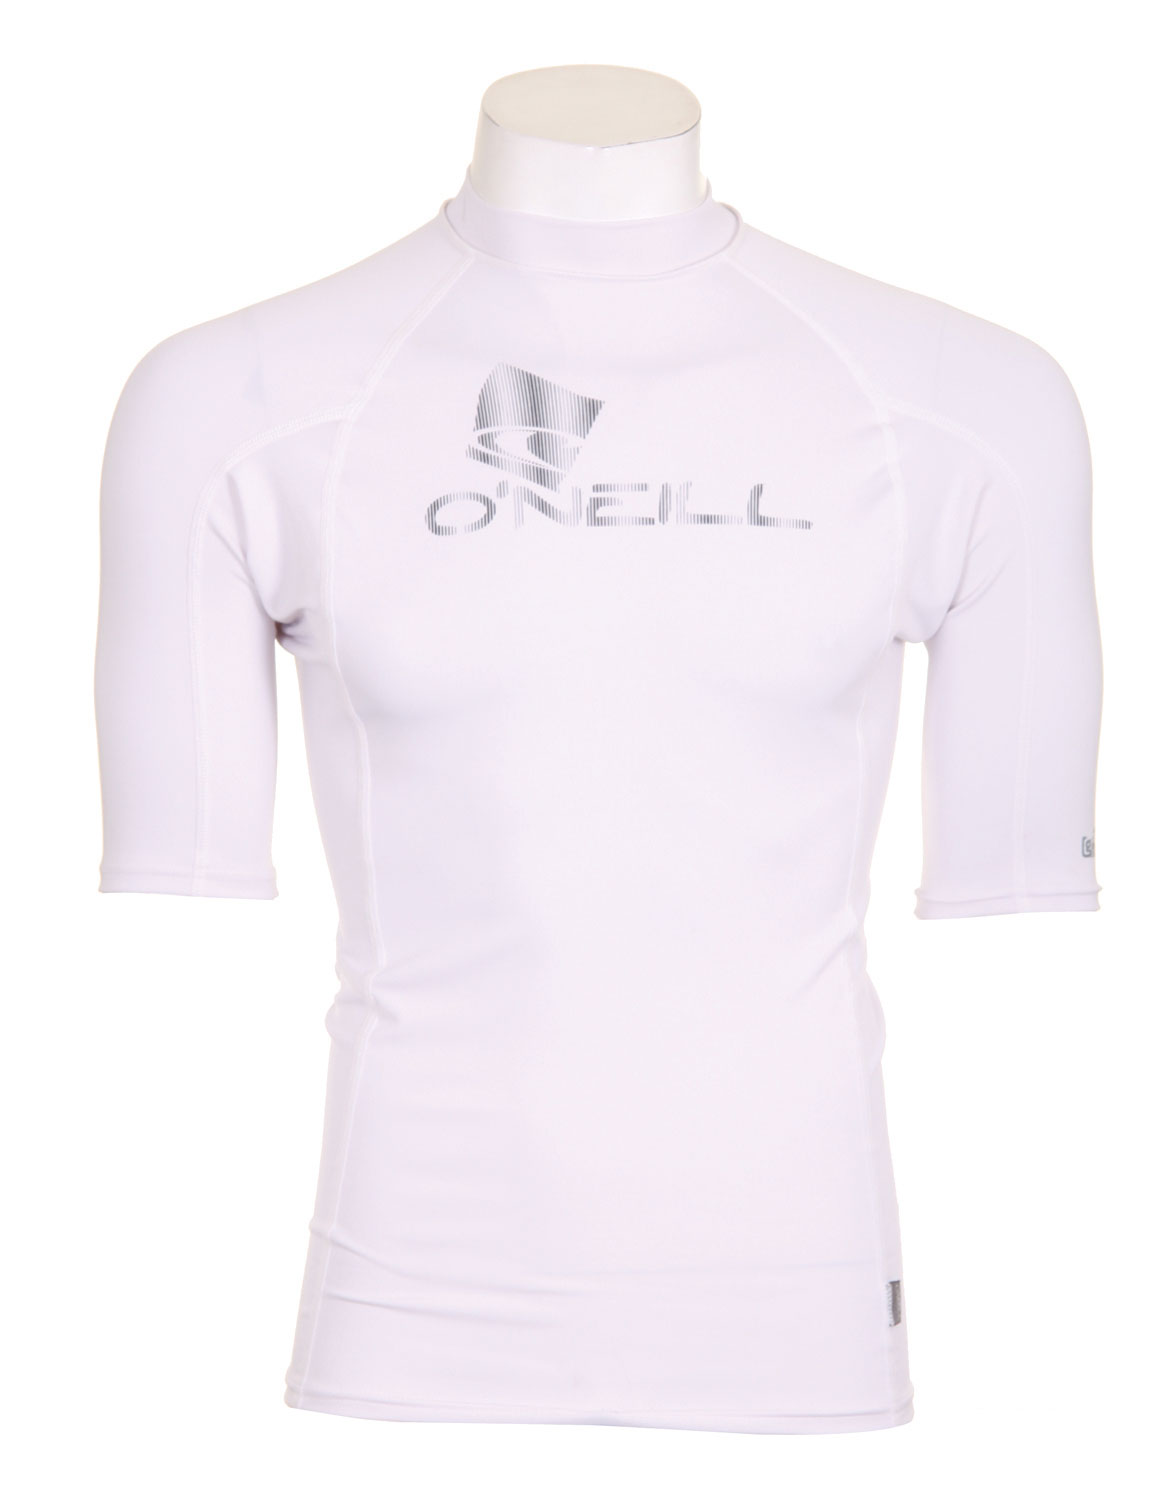 Surf RG8 means all products in this series are built from 90% recycled bottles and plastics and printed with water-based inks. The RG8 line features the same UV and rash protection as O'Neill's traditionally constructed lycra pieces.Key Features of the O'Neill RG8 S/S Crew Rashguard: Rash protection RG8 - Constructed 90% of recycled bottles and plastic U.P.F 50+ Seamless Paddle Zones - $24.95